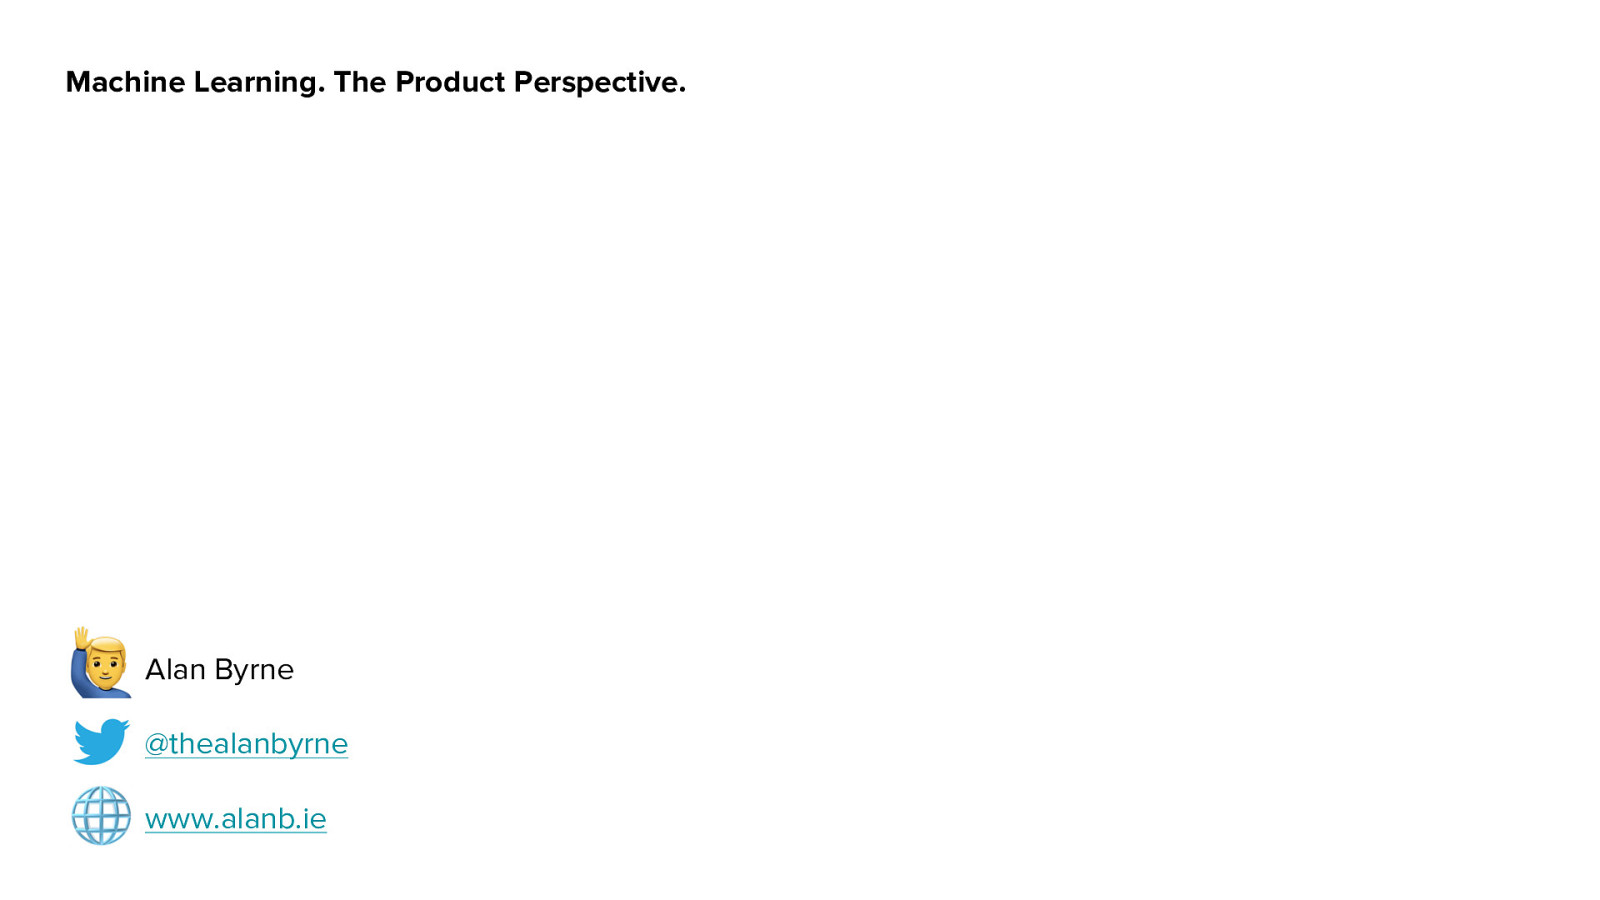 Machine Learning, a Product Perspective